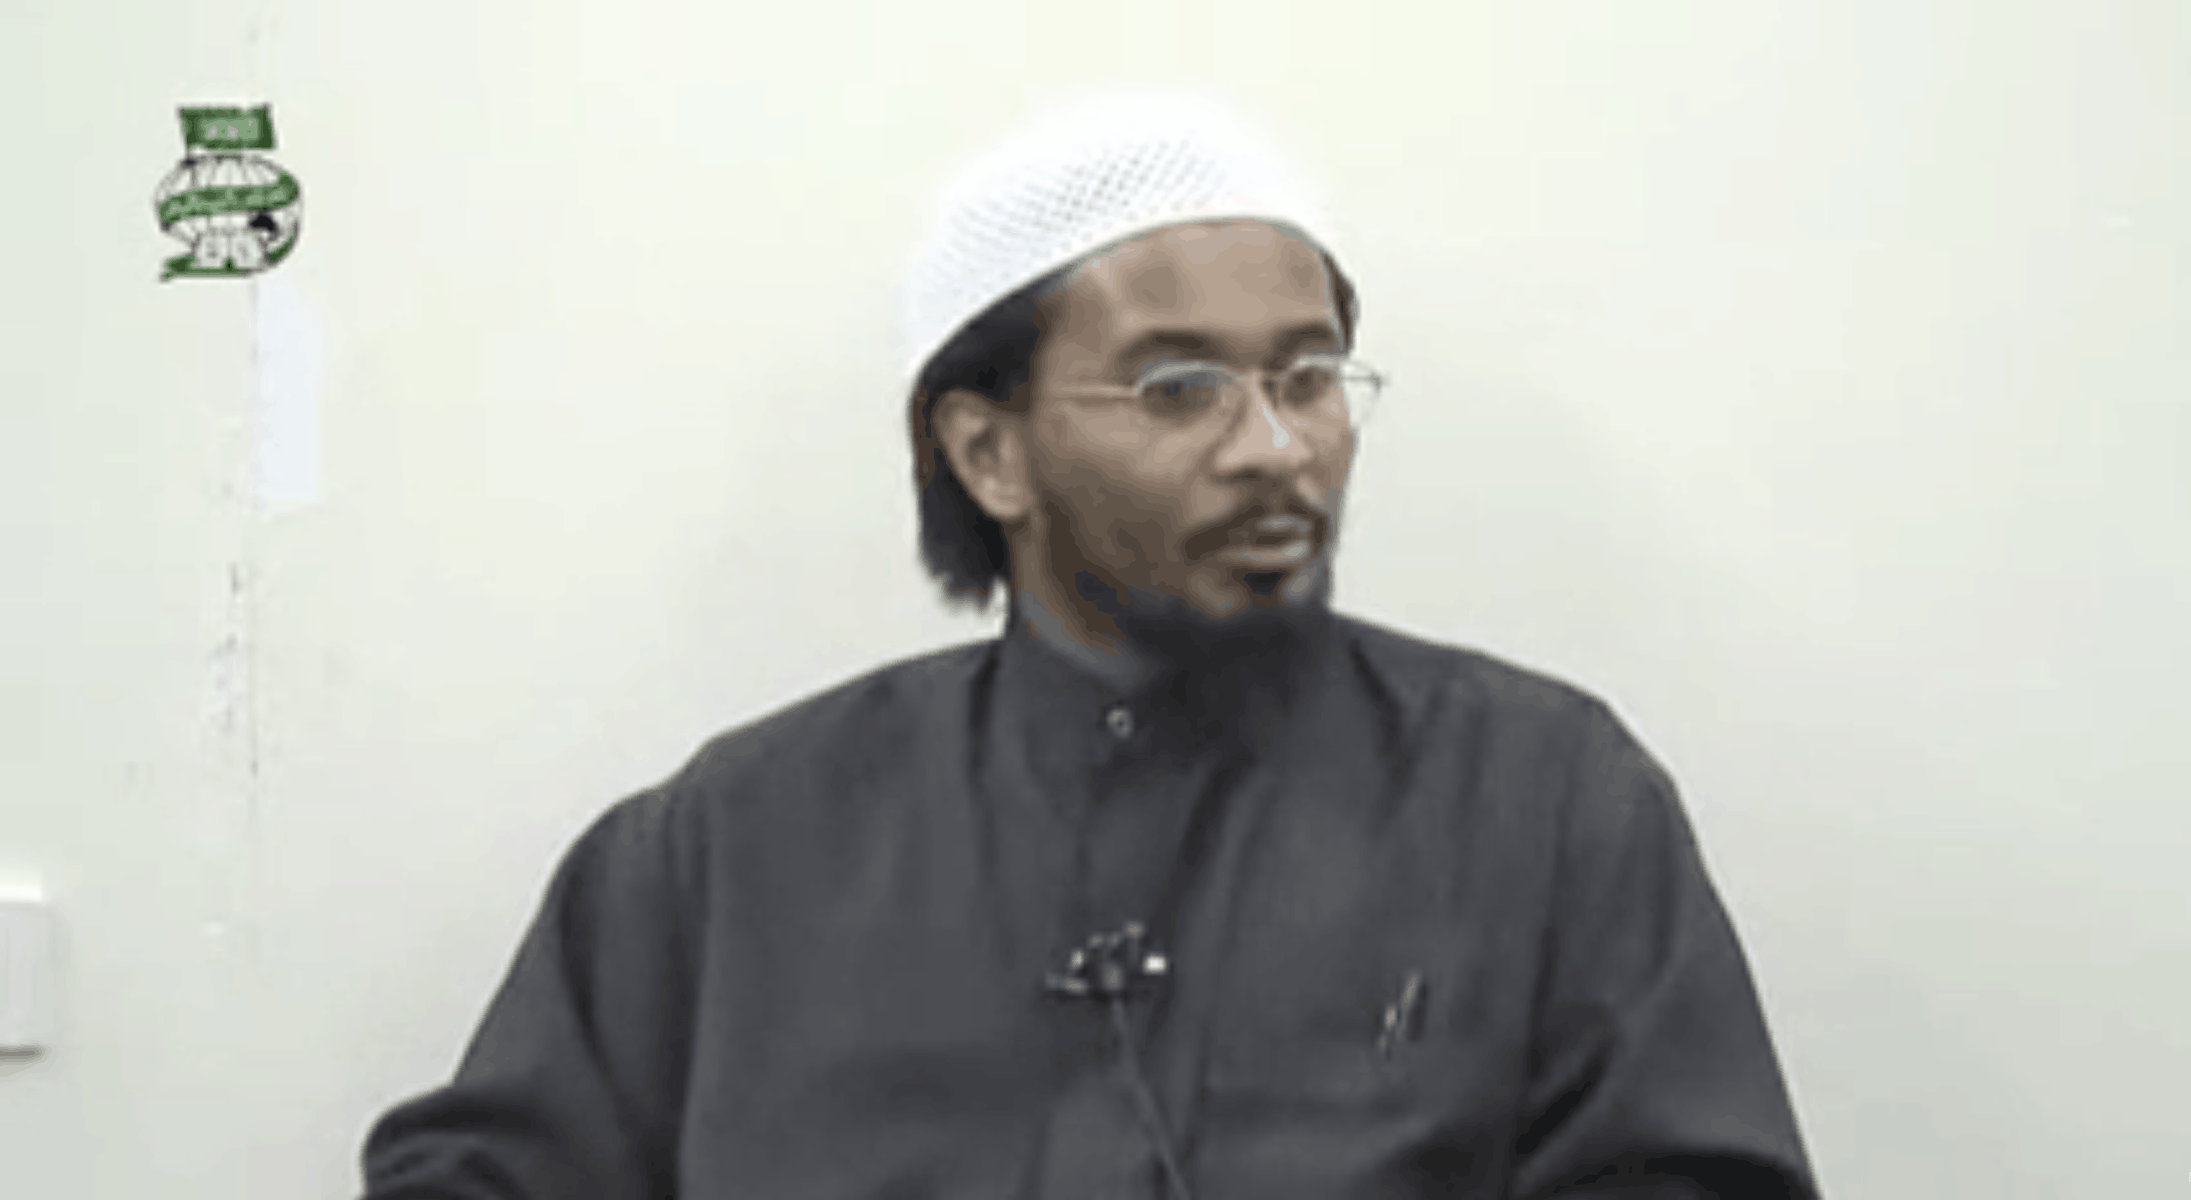 Kamal el Mekki – Giving Dawah in the West